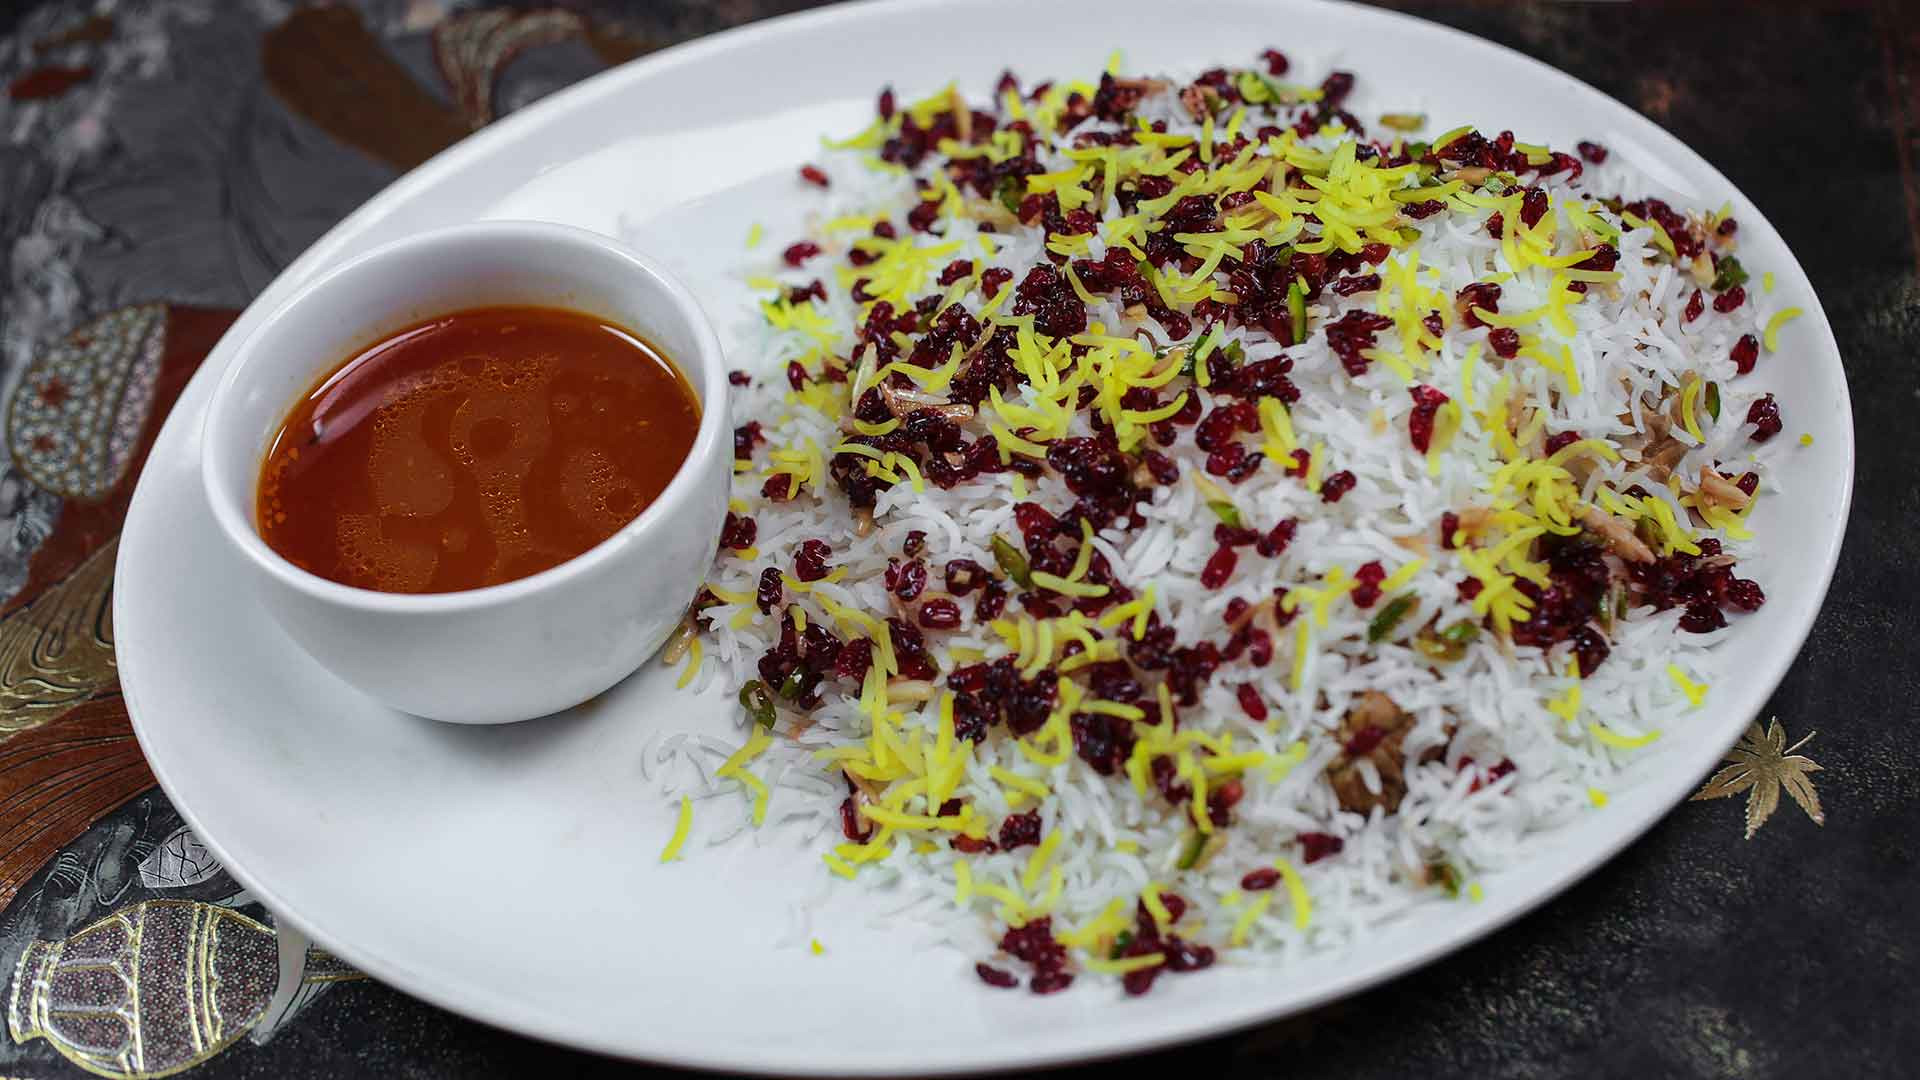 Shepherd's Bush Restaurants: Sufi Restaurant